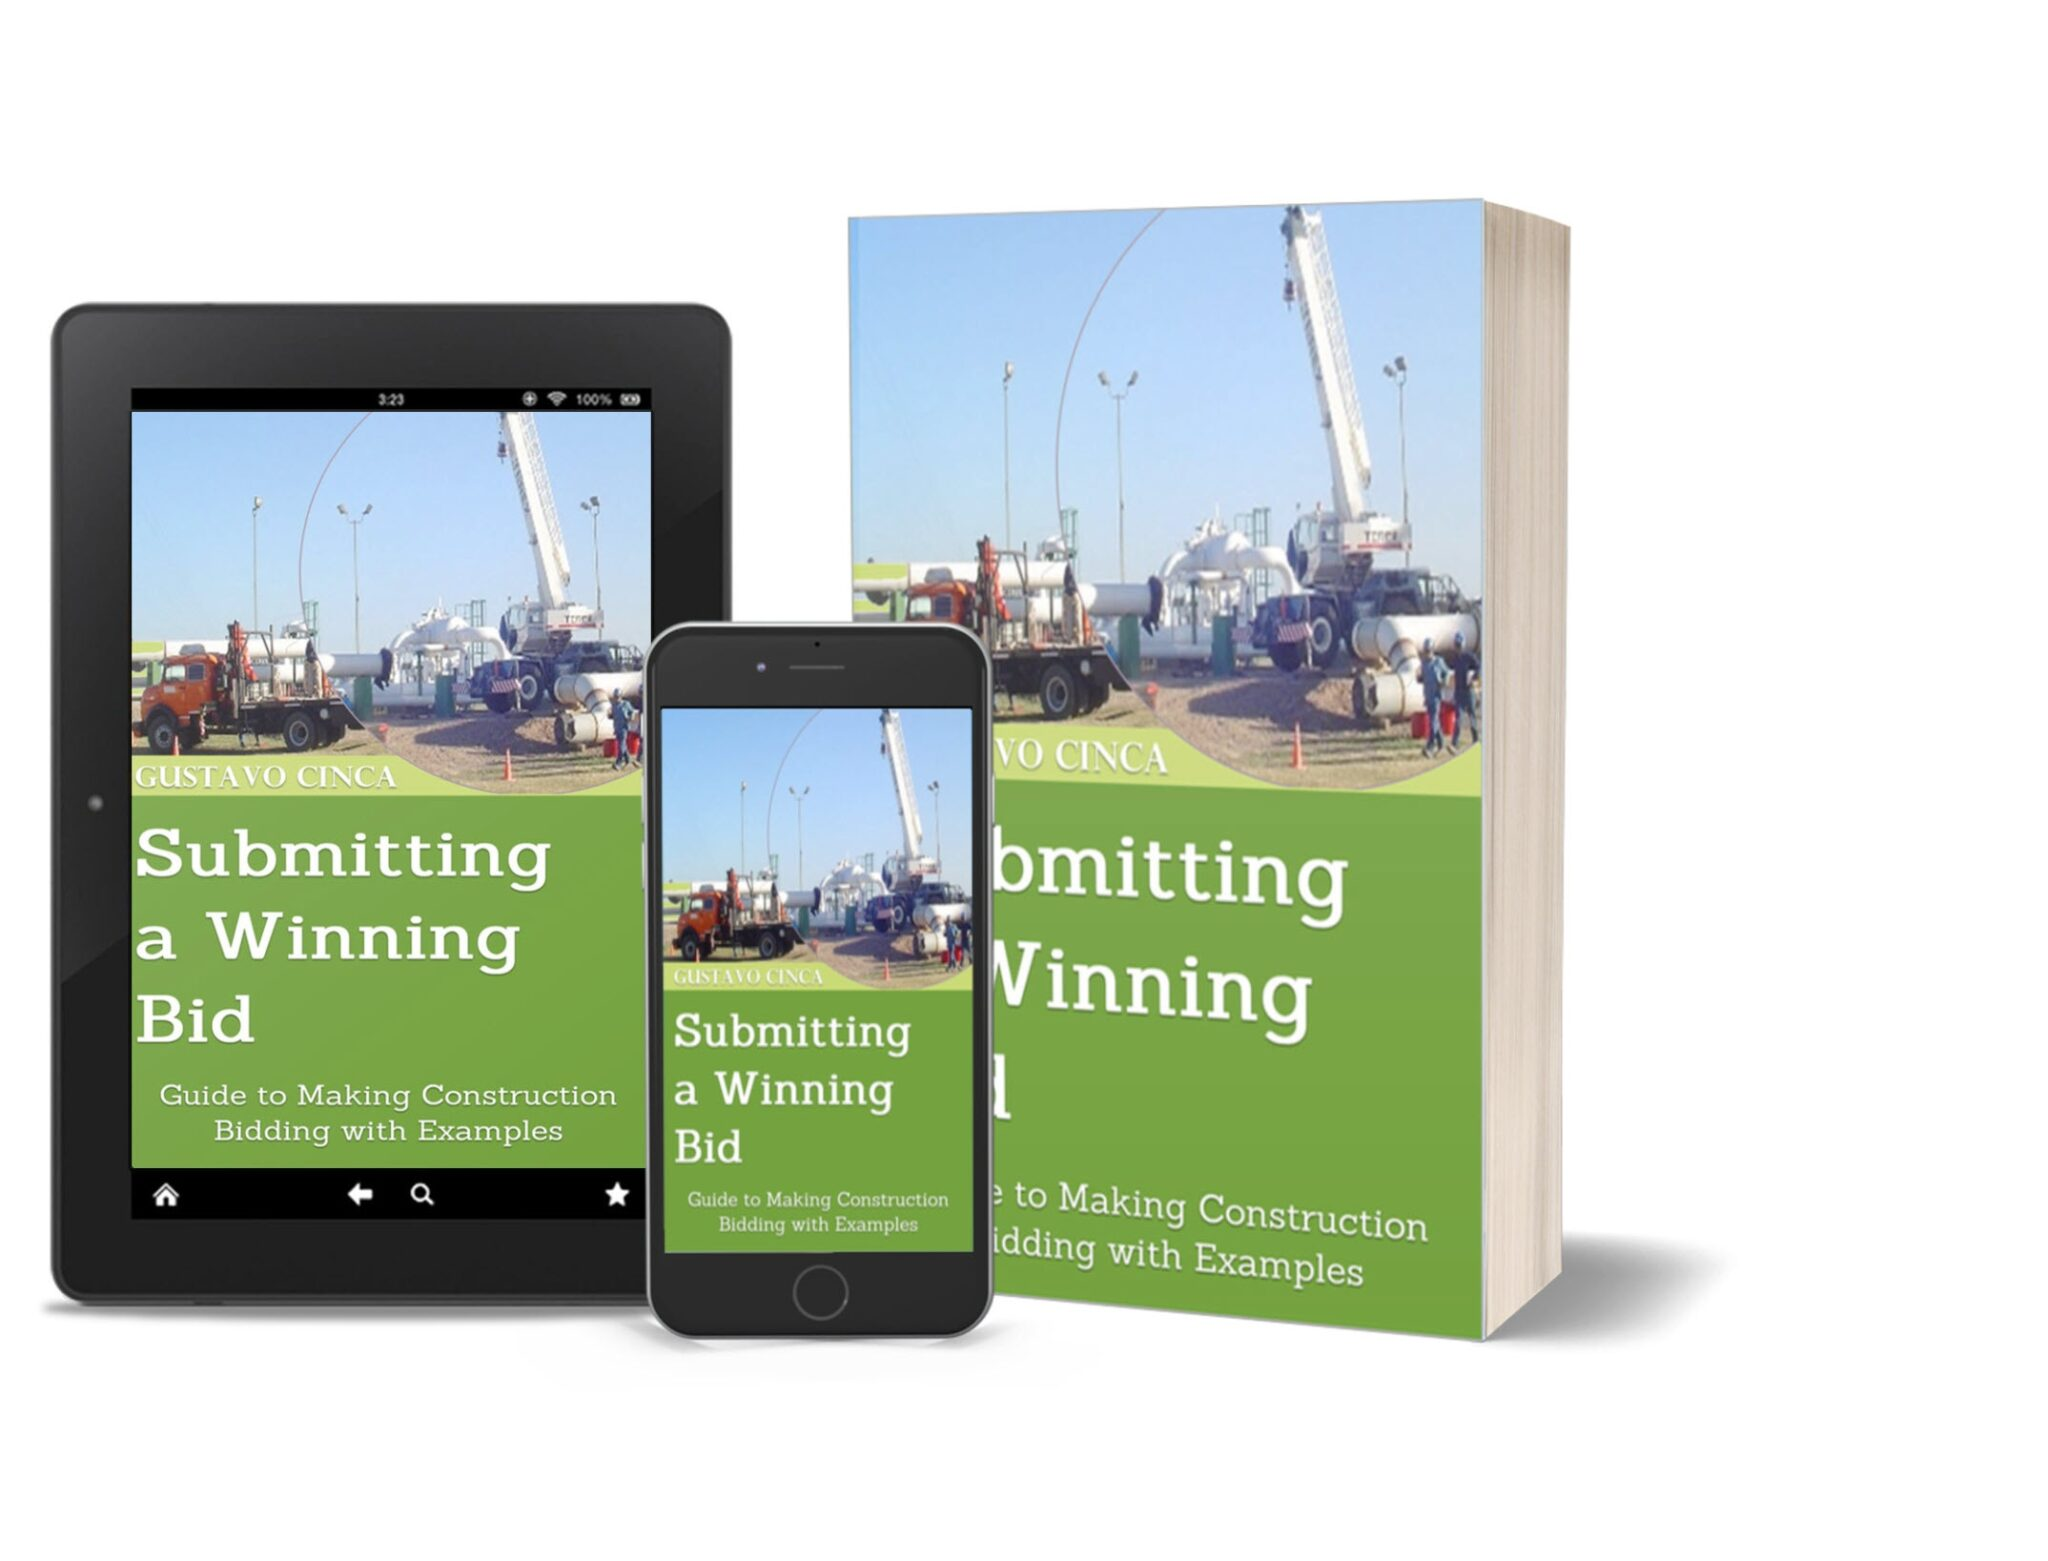 Submitting a Winning Bid: Guide to Making Construction Bidding with Examples